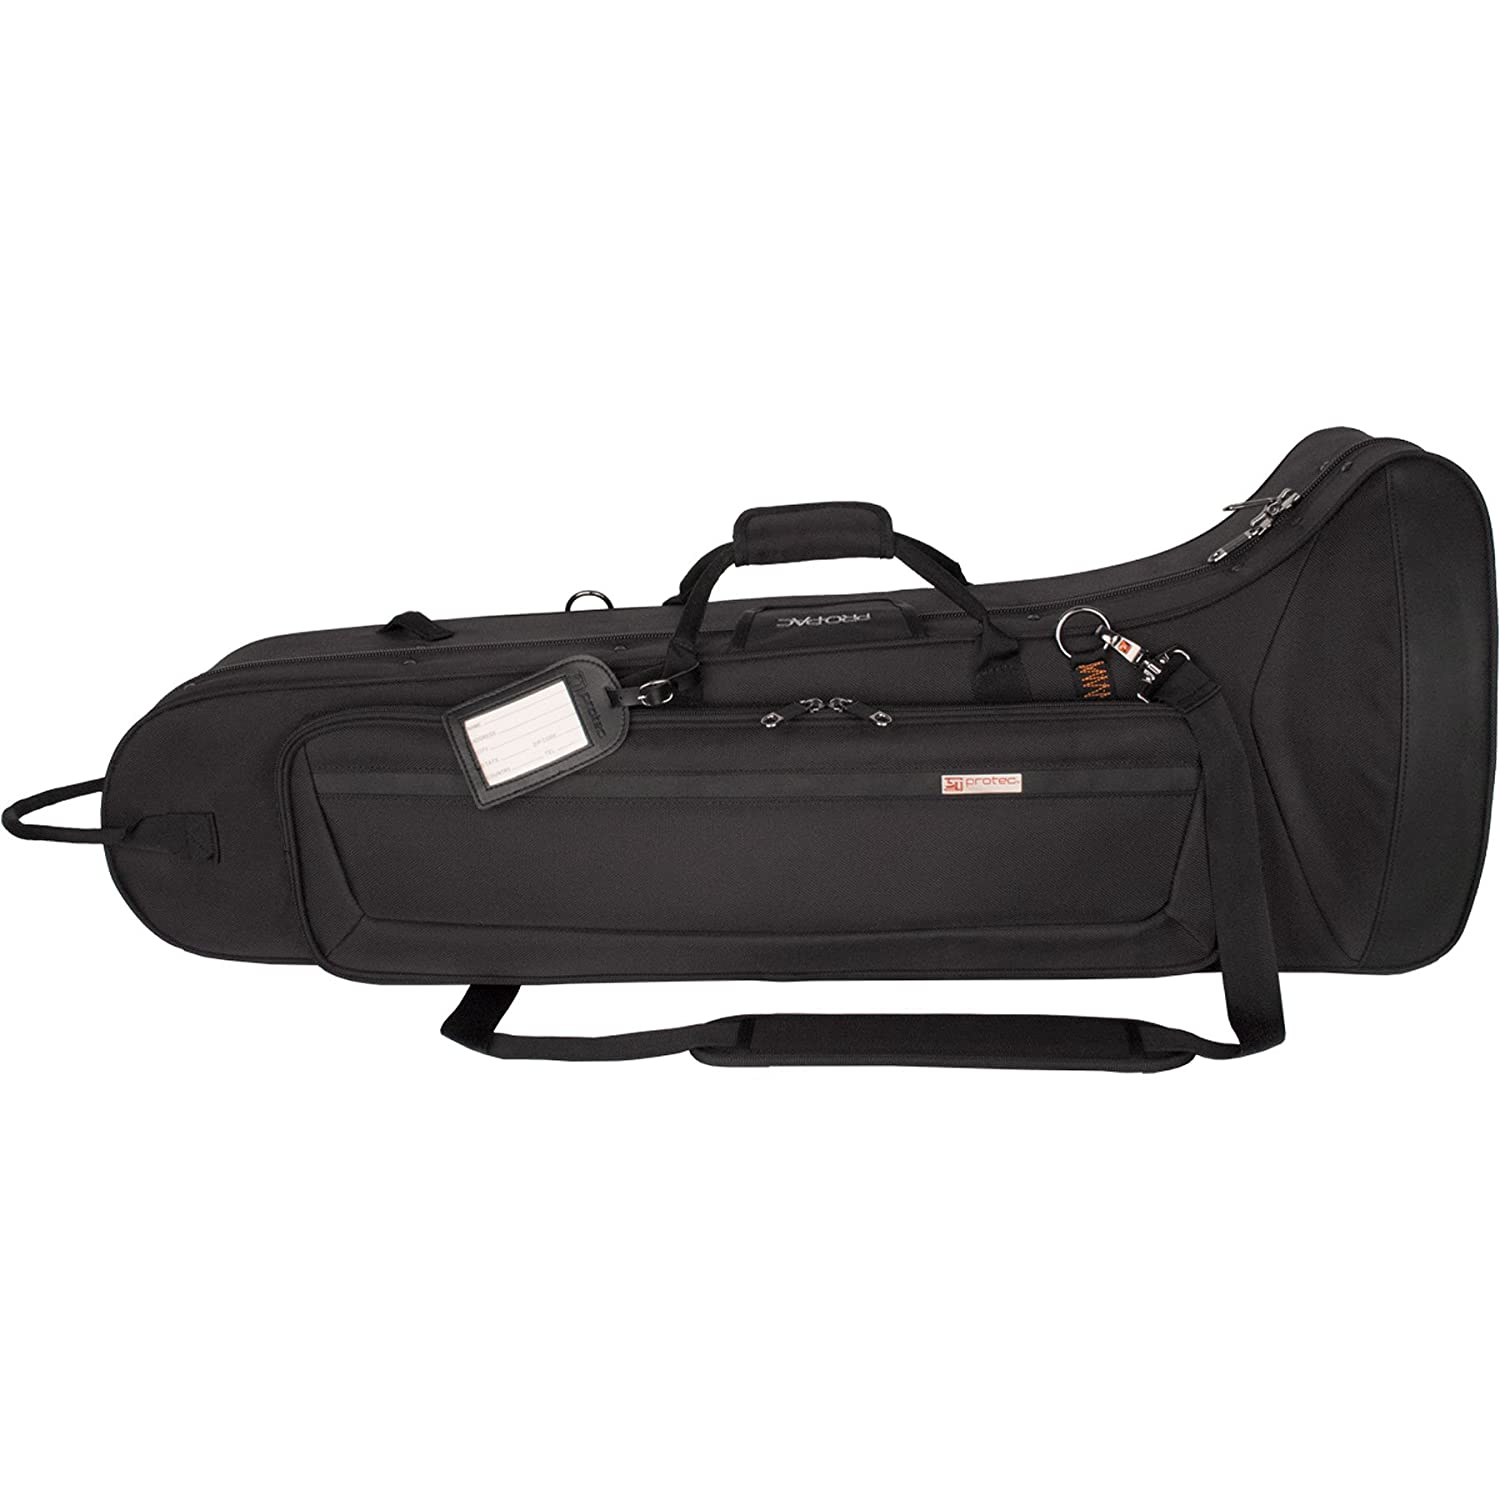 Protec PB309CT - Estuche para trombón, color negro: Amazon ...